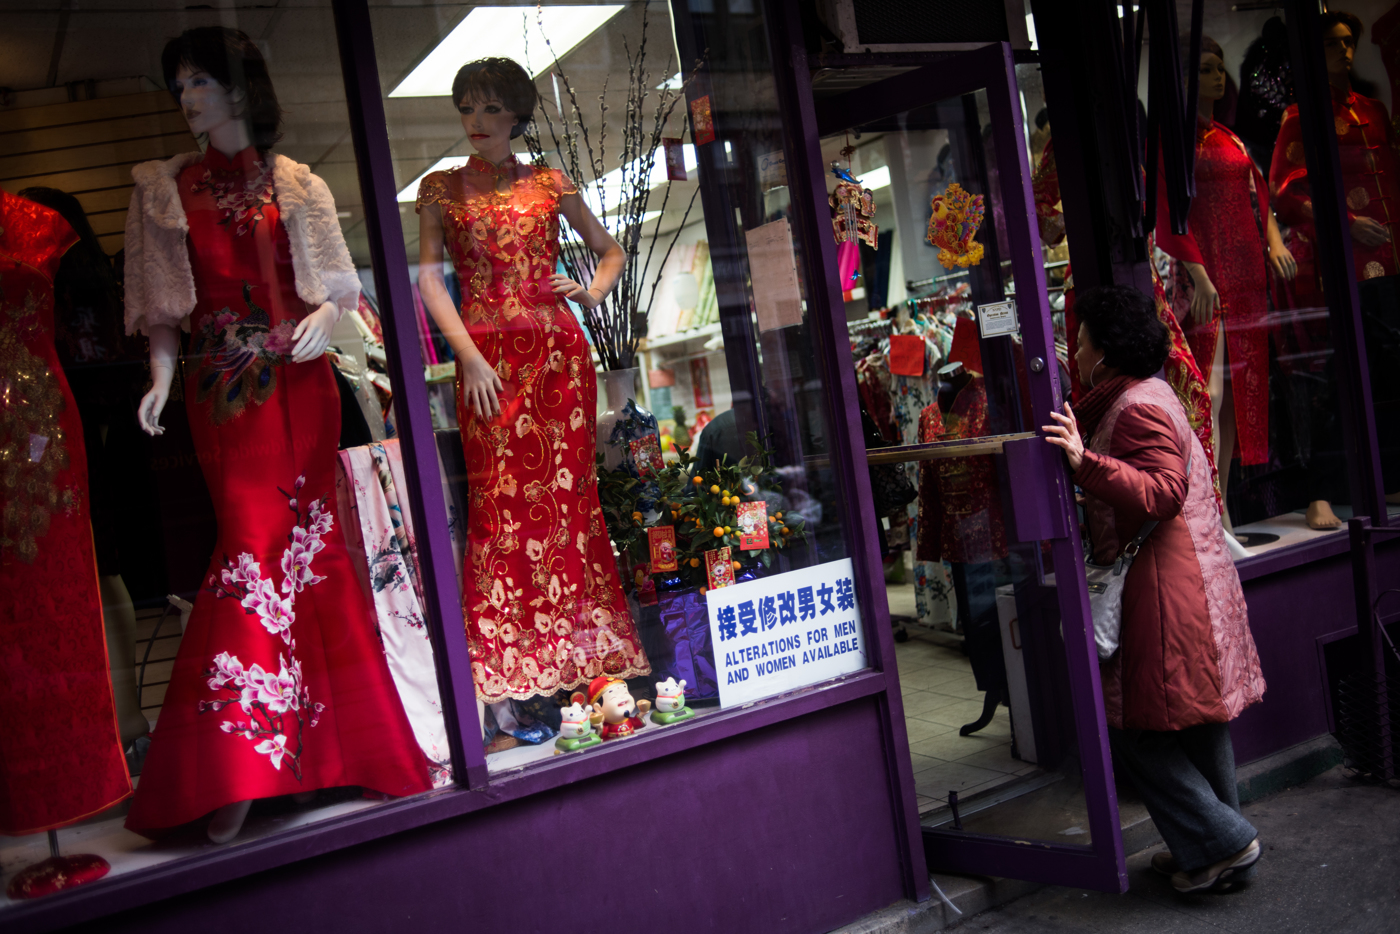 A woman enters a store selling traditional clothing in Chinatown New York, NY.